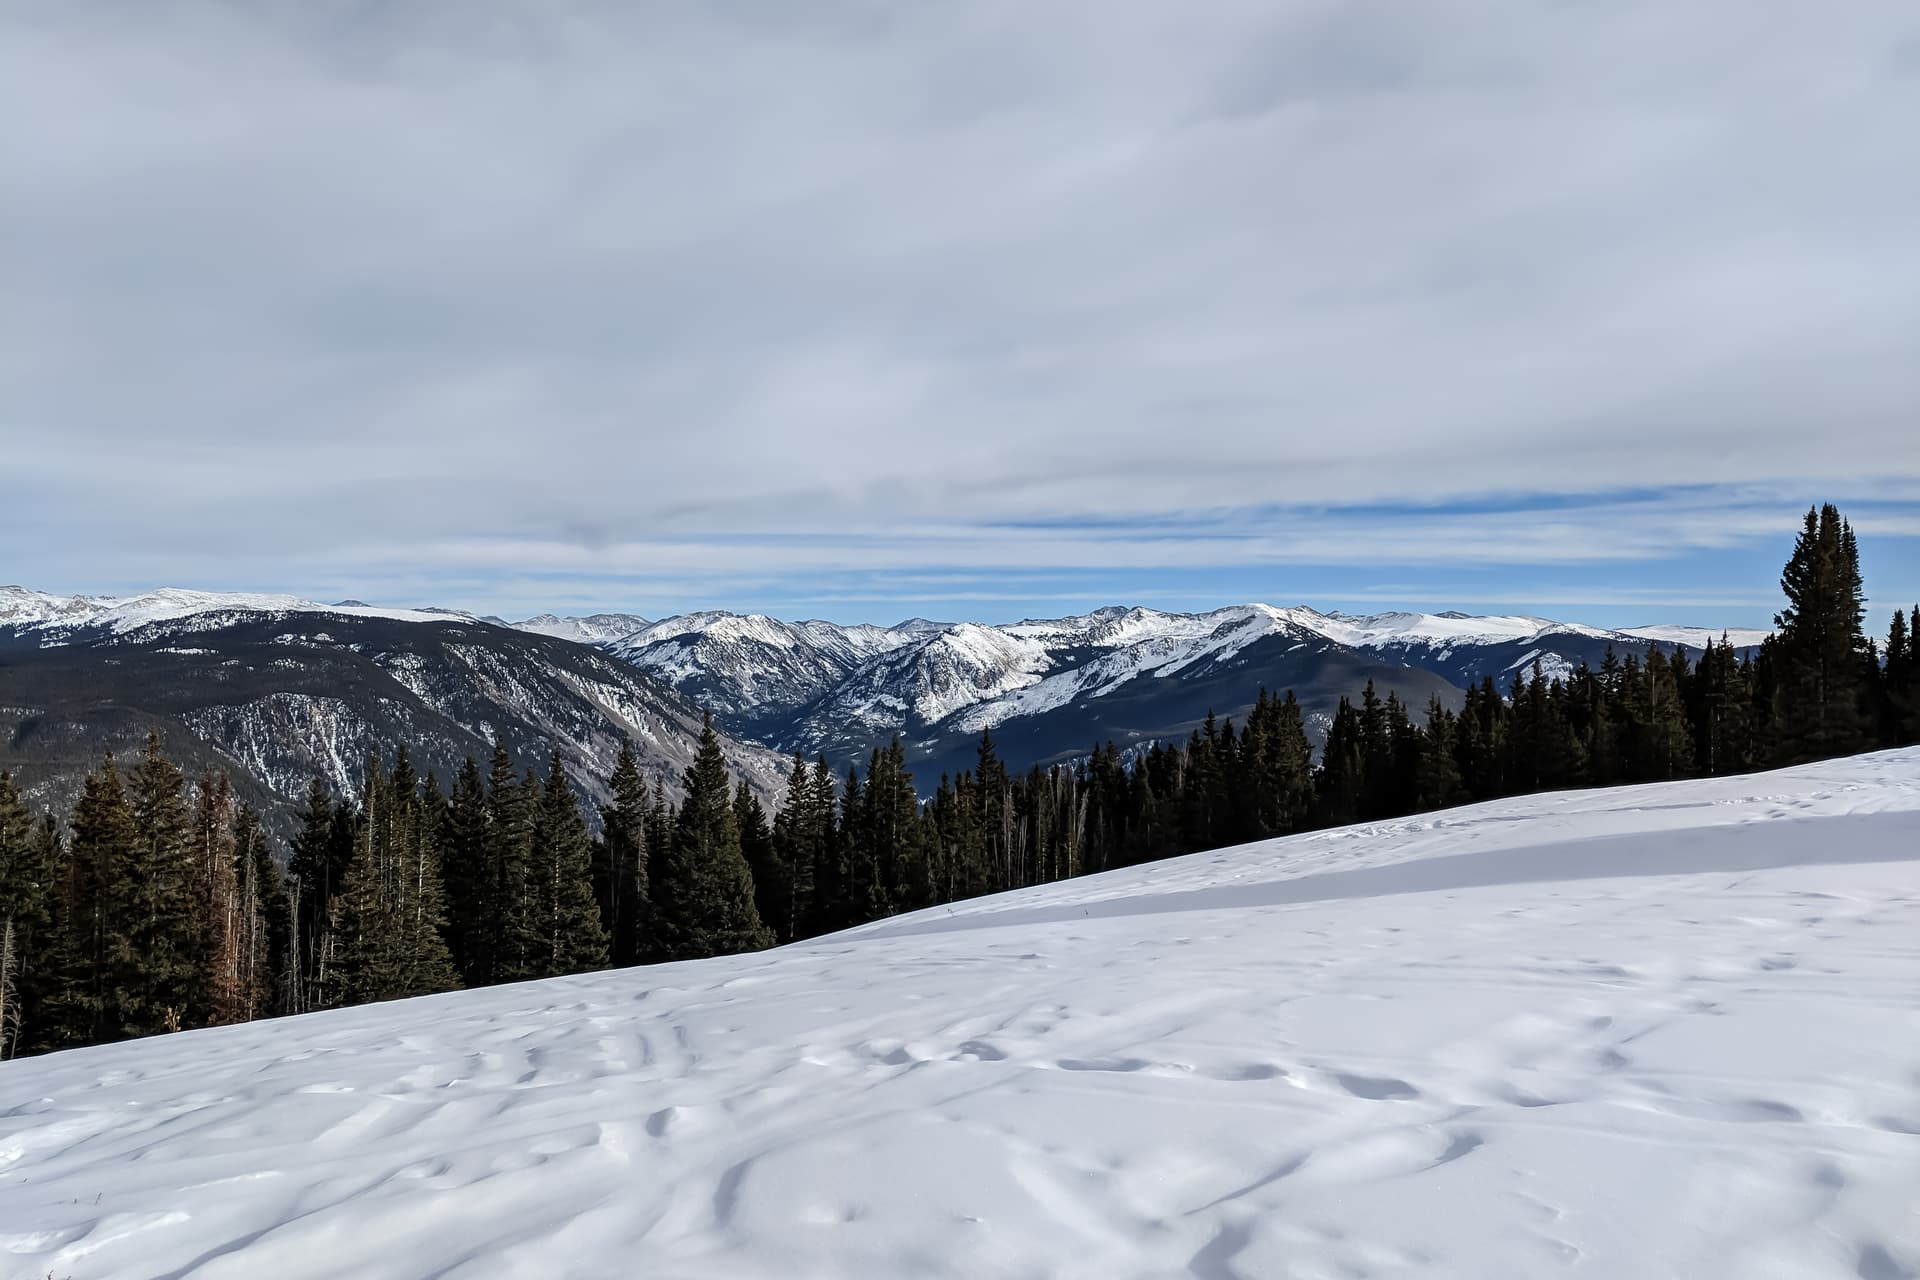 A distant, snow-capped mountain range. In the foreground is a snow-filled clearing, but thick pine forests block the view of the valley below.